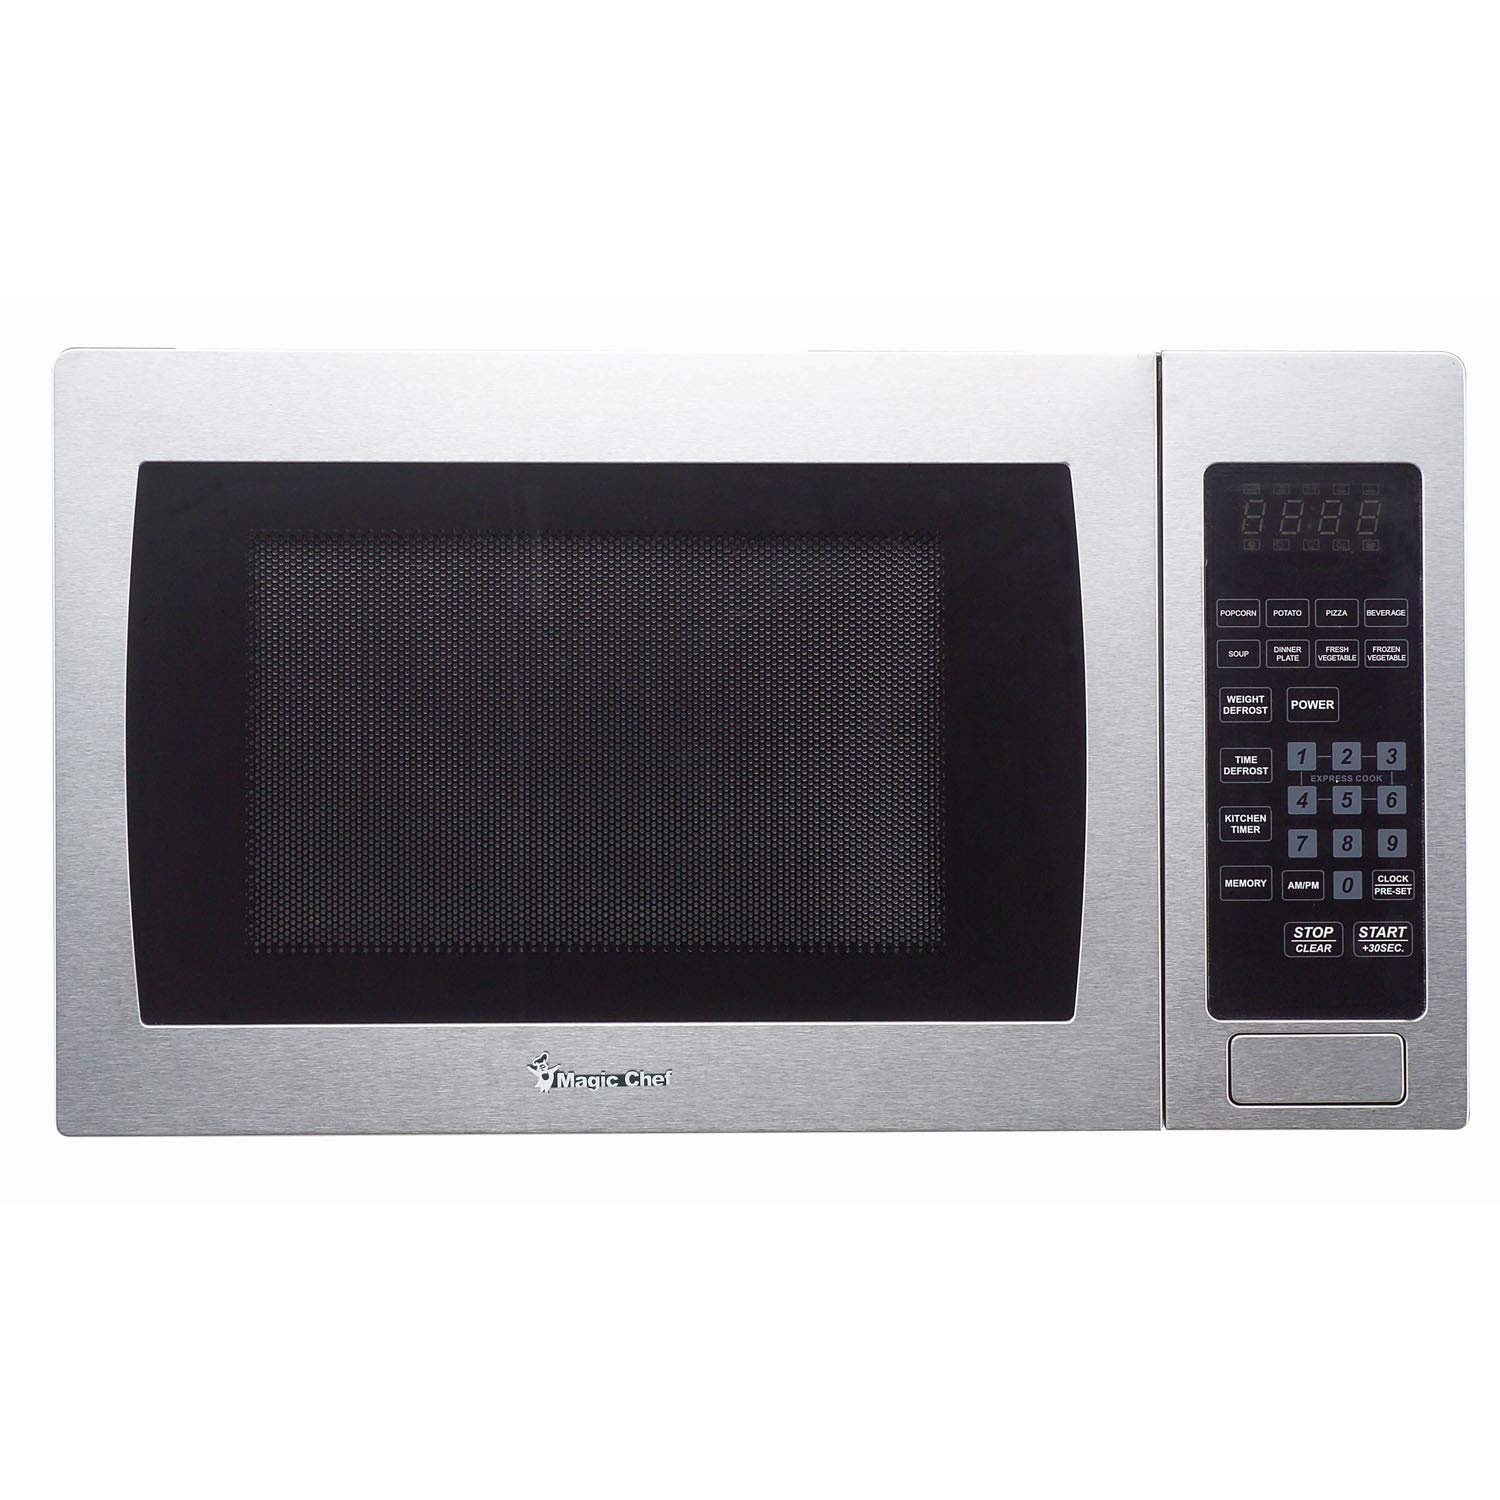 Magic Chef Countertop MCM990ST Microwave